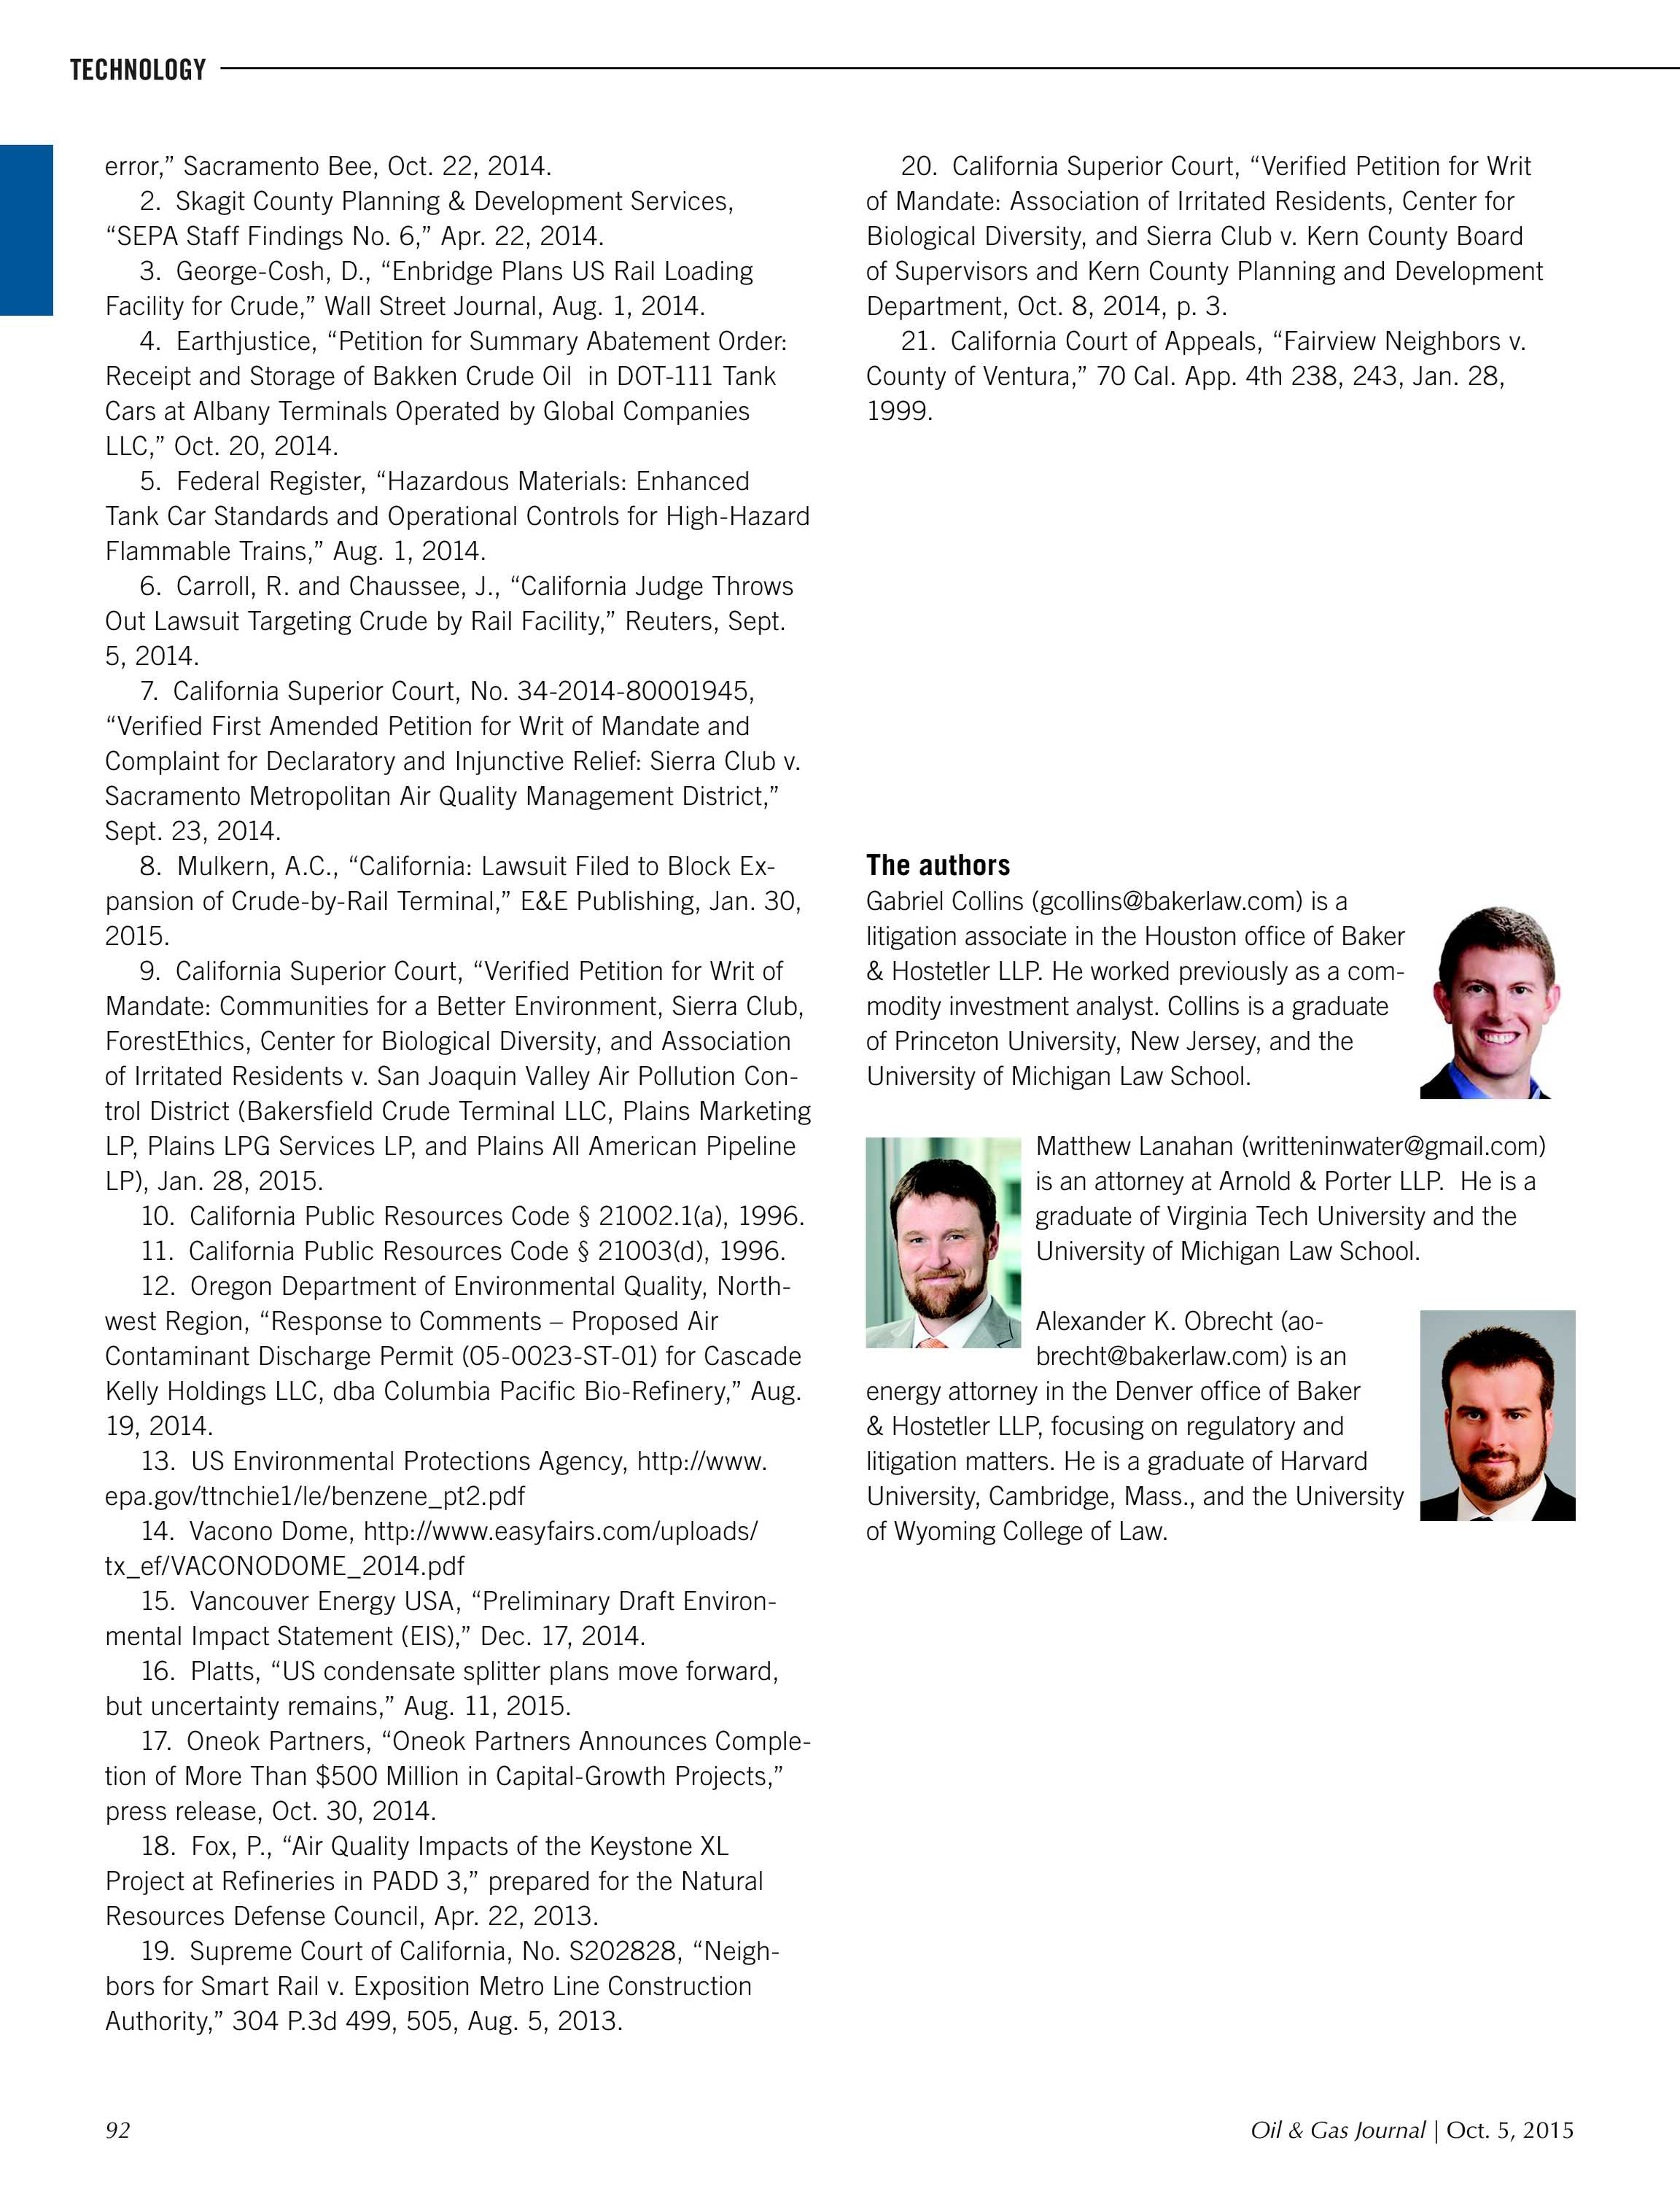 Oil & Gas Journal - October 05, 2015 - page 92